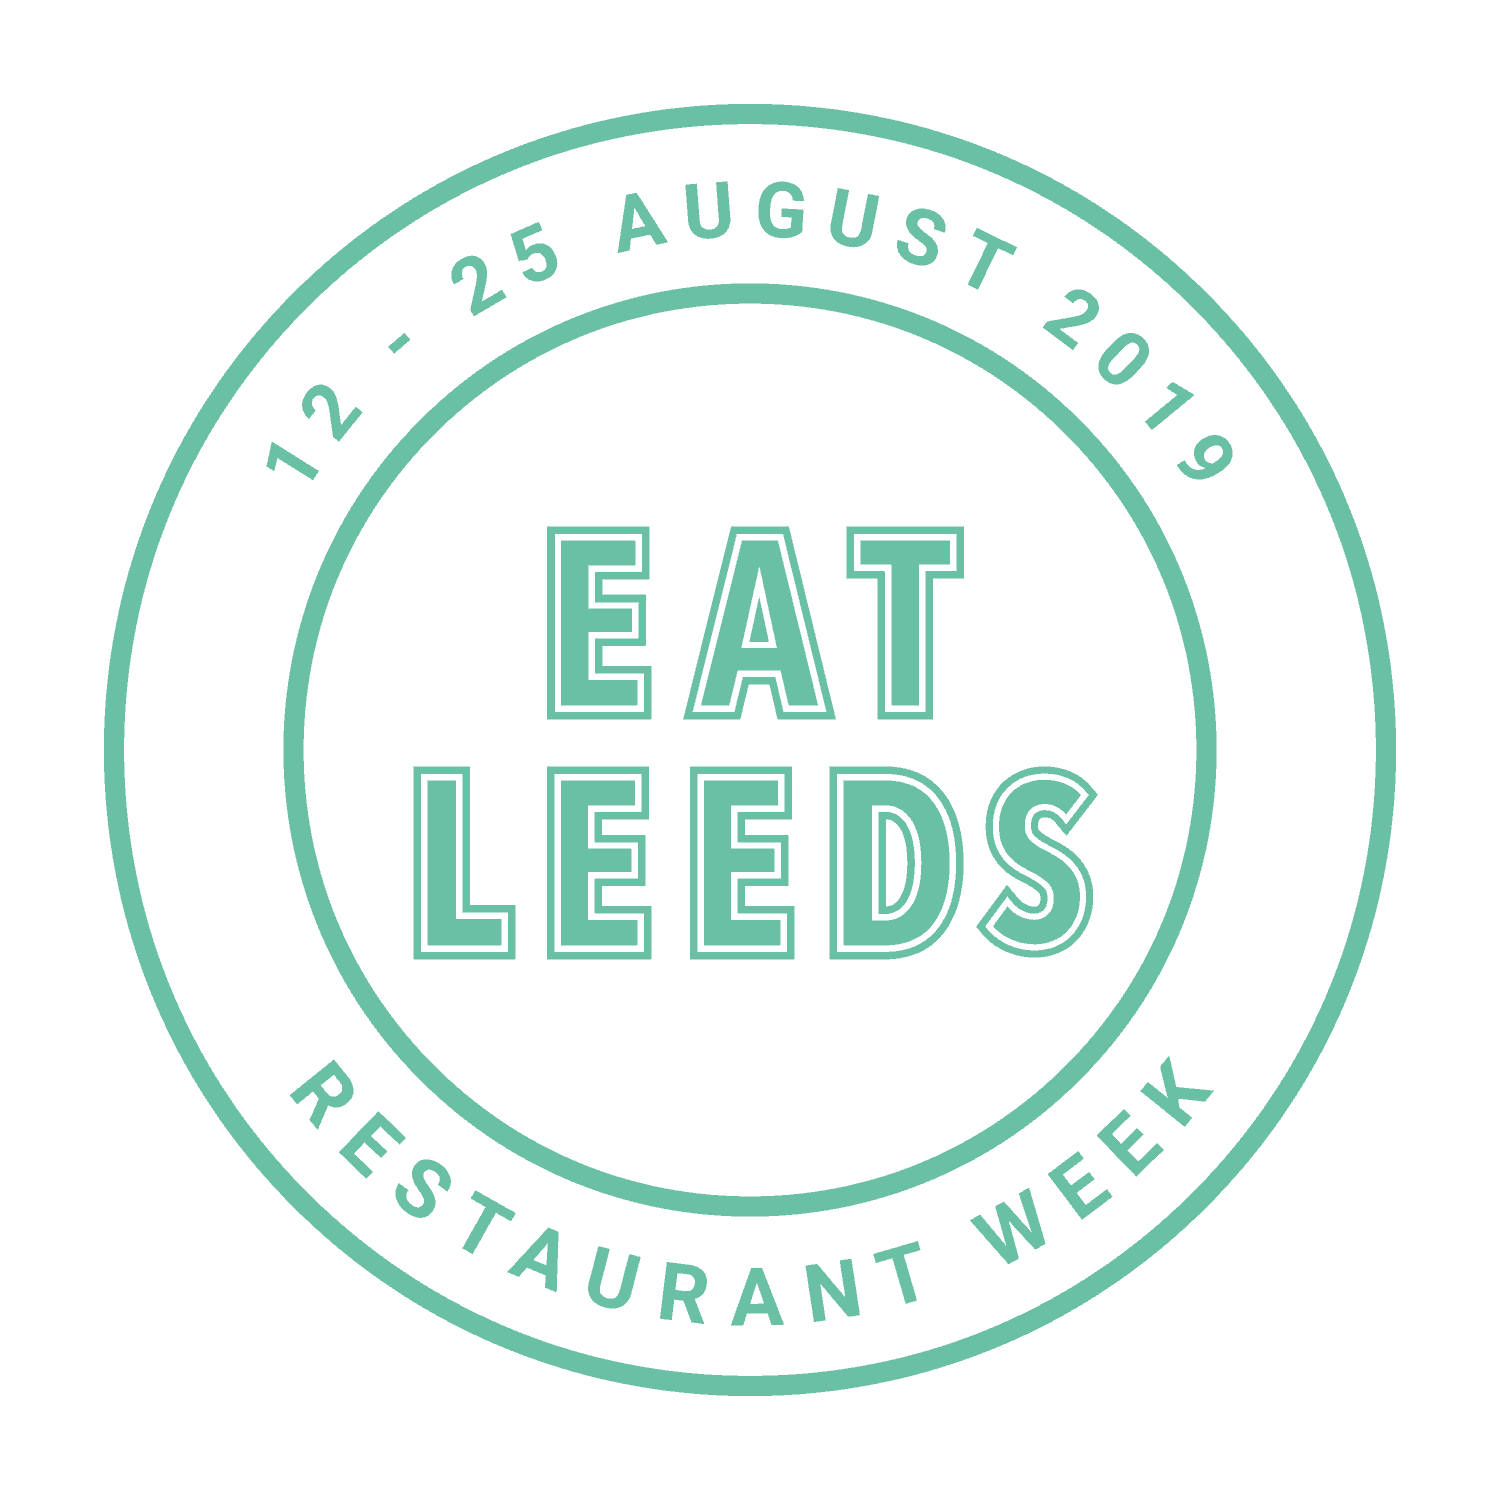 Eat Leeds logo